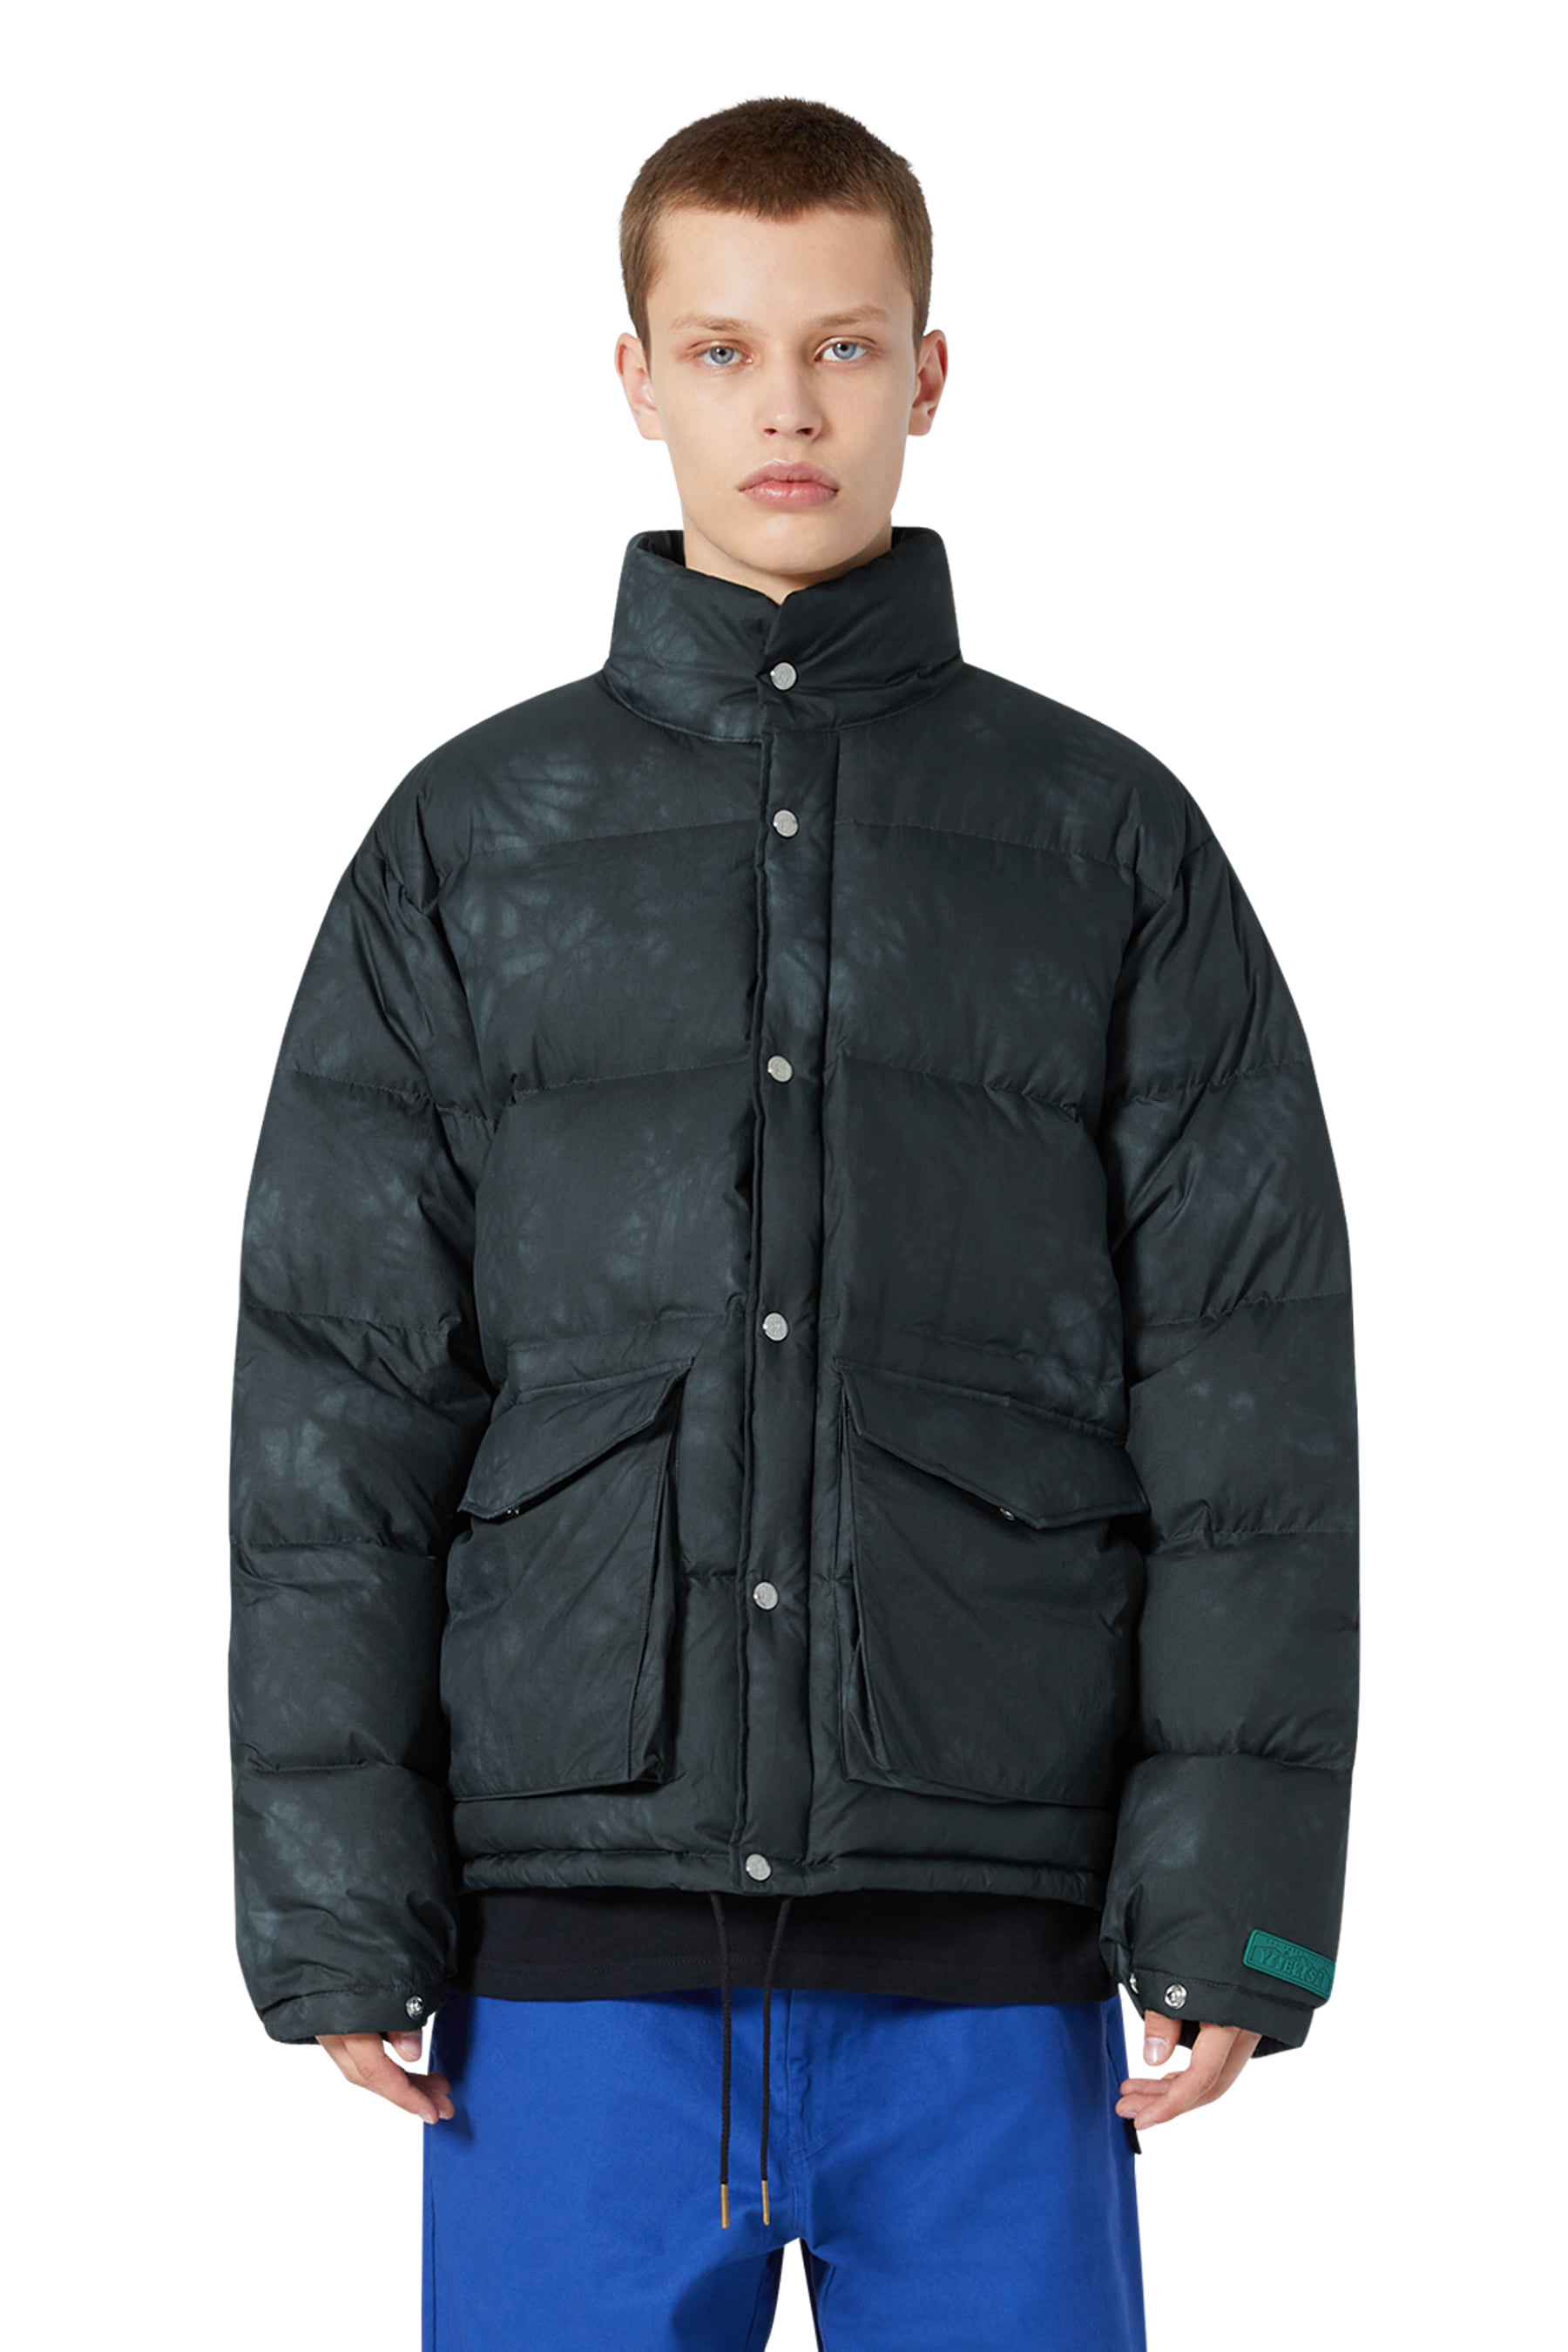 Y.E.S Dyed Down Jacket Black